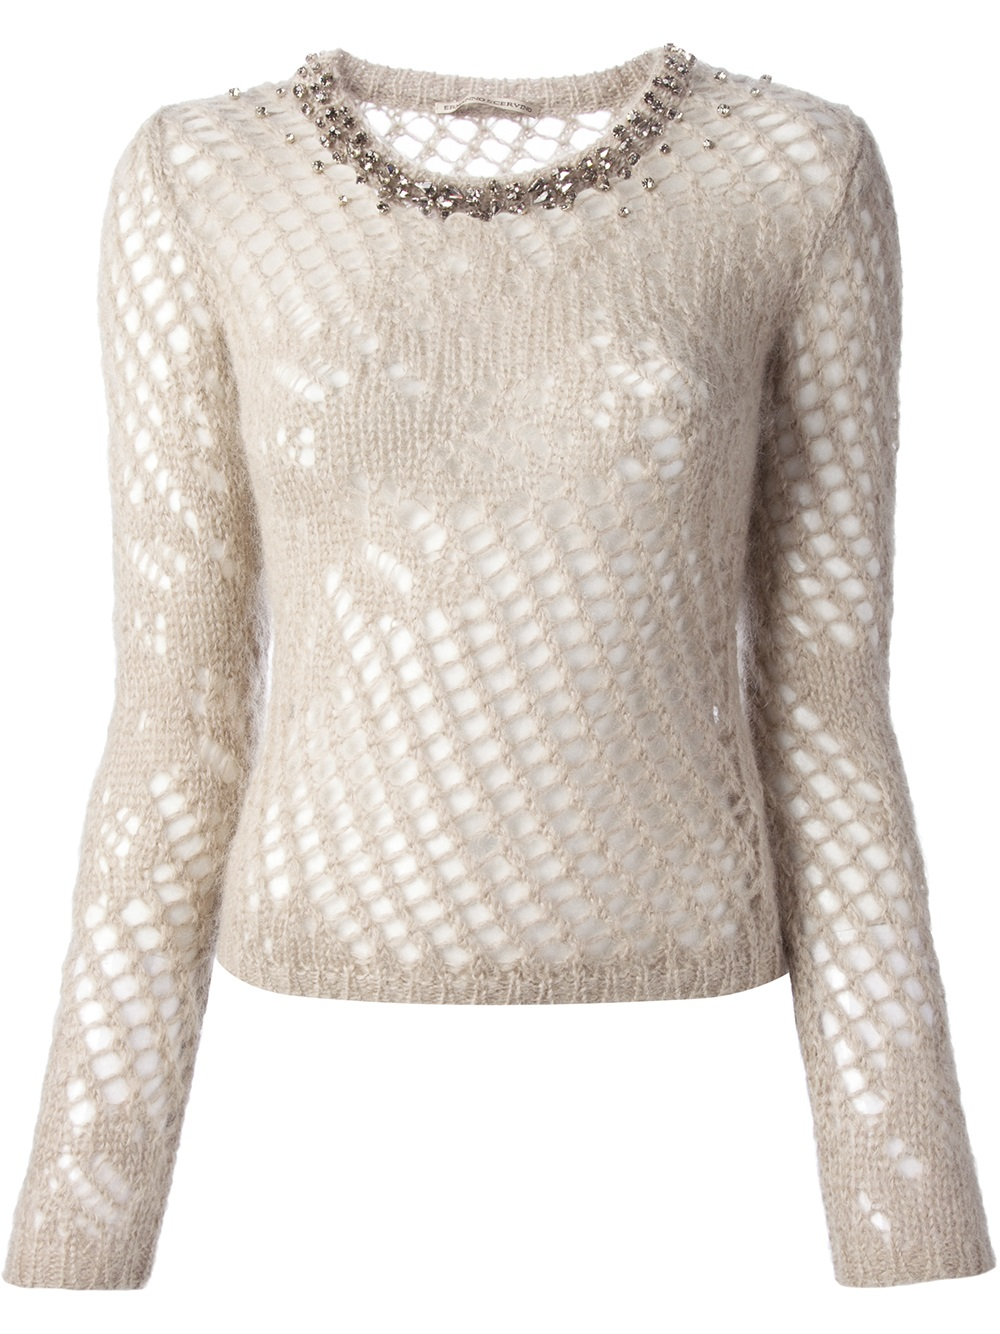 Picture yourself wearing this cashmere-soft sweater on a dinner date. The slit sleeves are held together by faux pearls. Acrylic. Machine wash & dry. Imported. Misses - 26